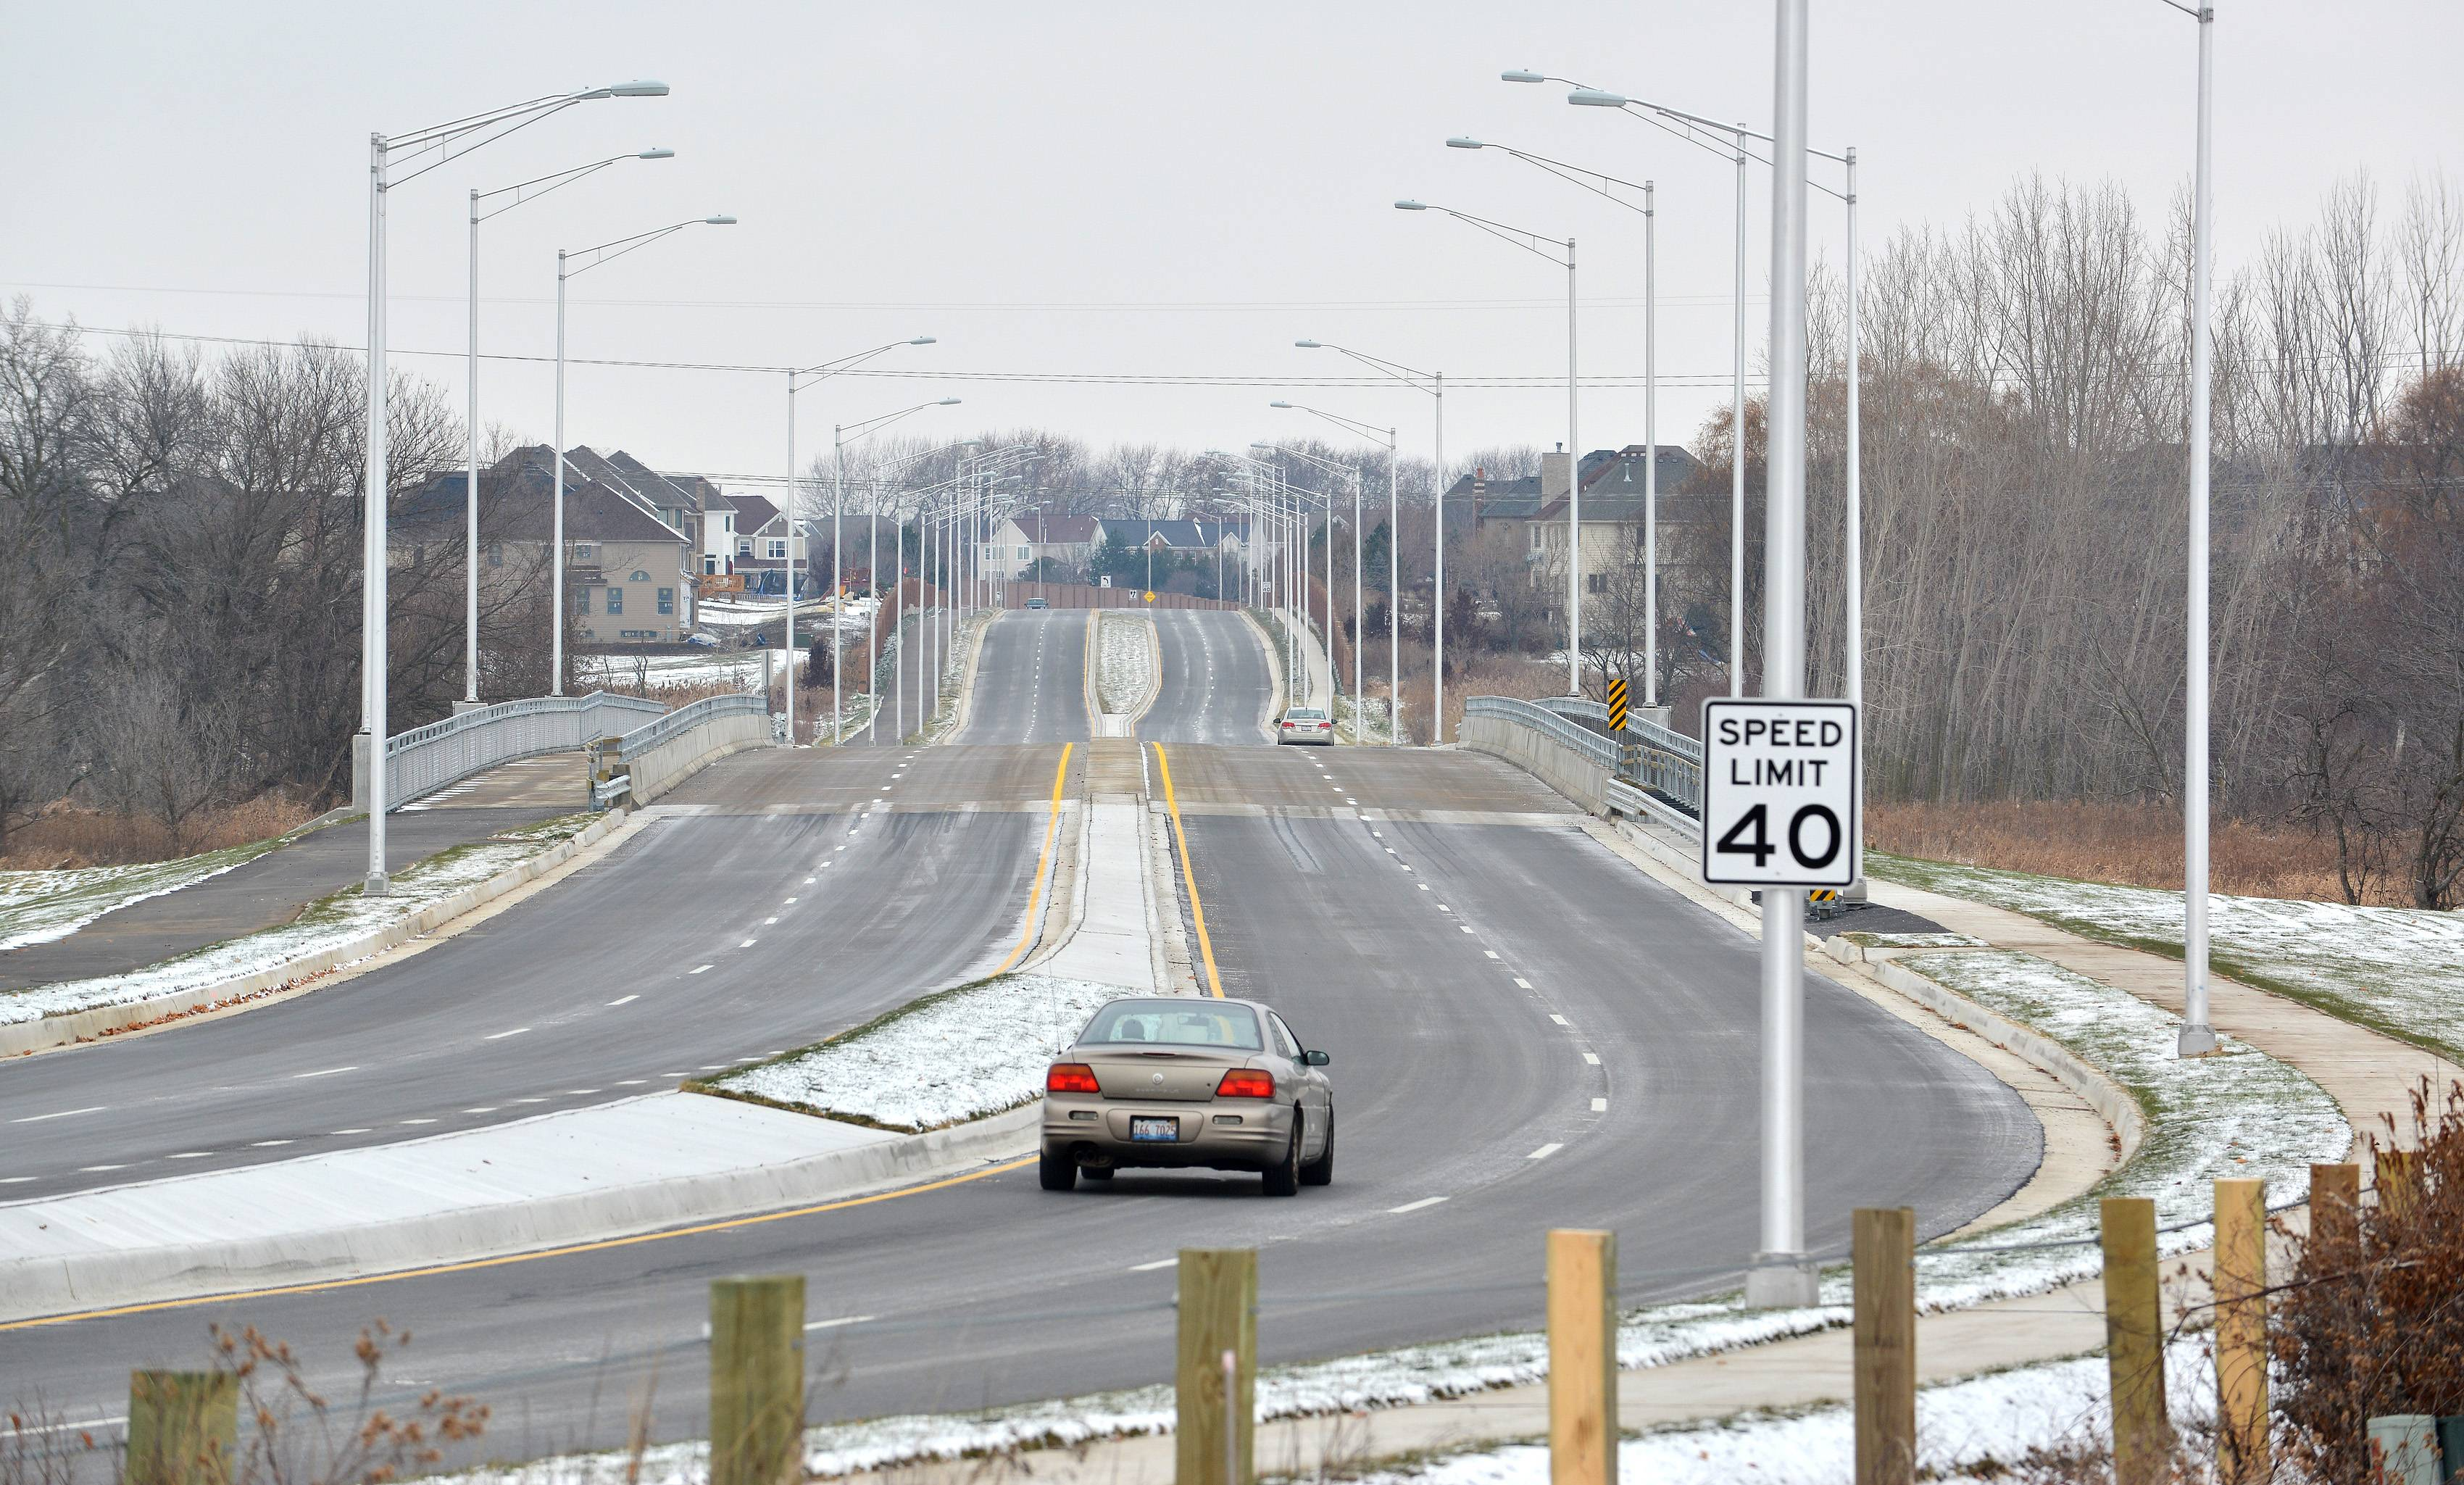 It's been less than a month since the new 95th Street bridge opened between Naperville and Bolingbrook and nearby residents are noticing a trend of some drivers street racing and using the new stretch as a speedway, paying no attention to the 40 mph speed limit sign on the east side of the bridge.